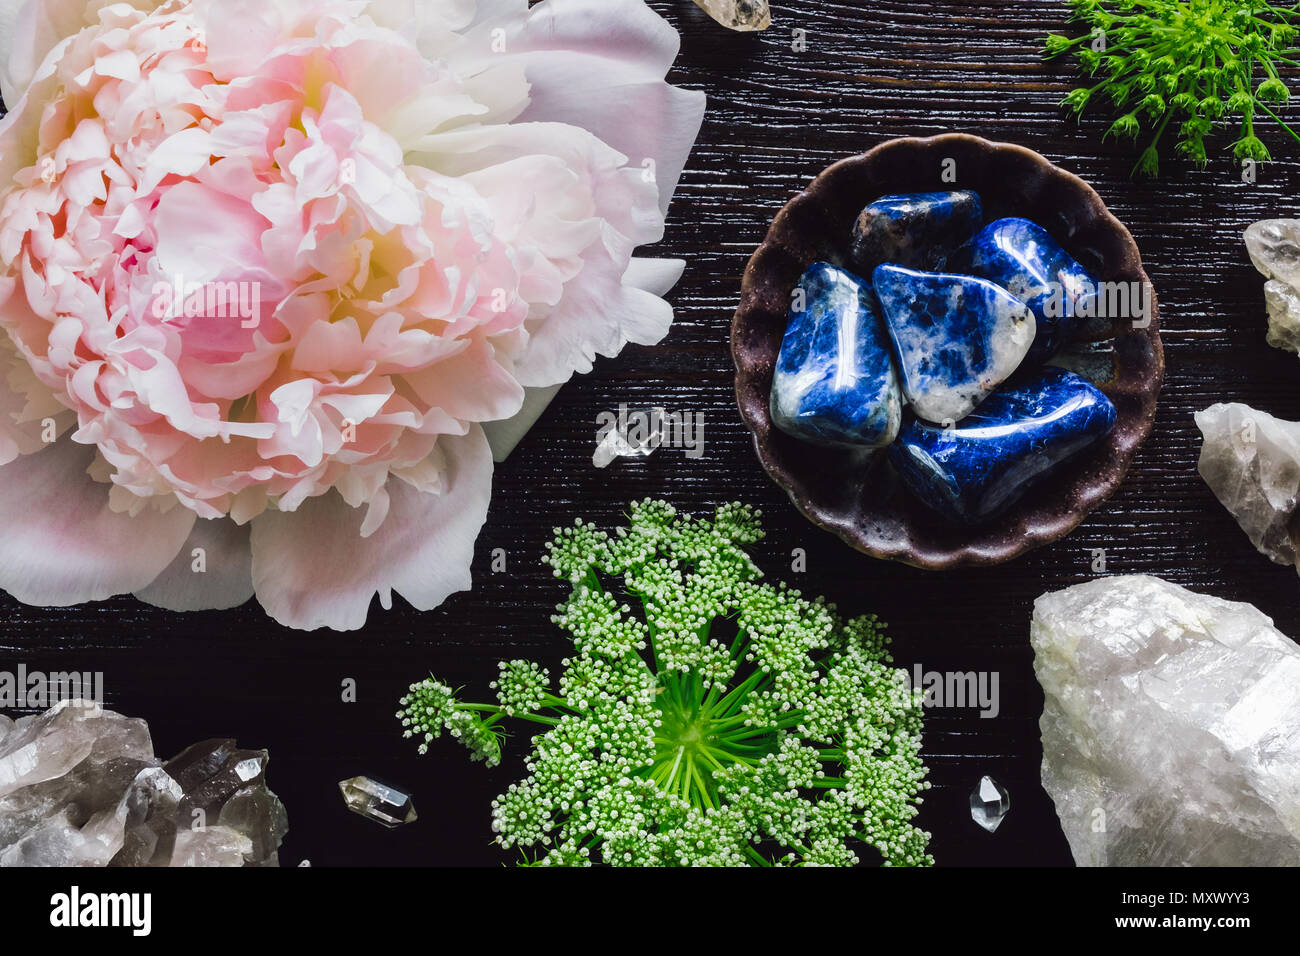 Sodalite and Quartz with Peony and Queen Anne's Lace on Dark Table - Stock Image